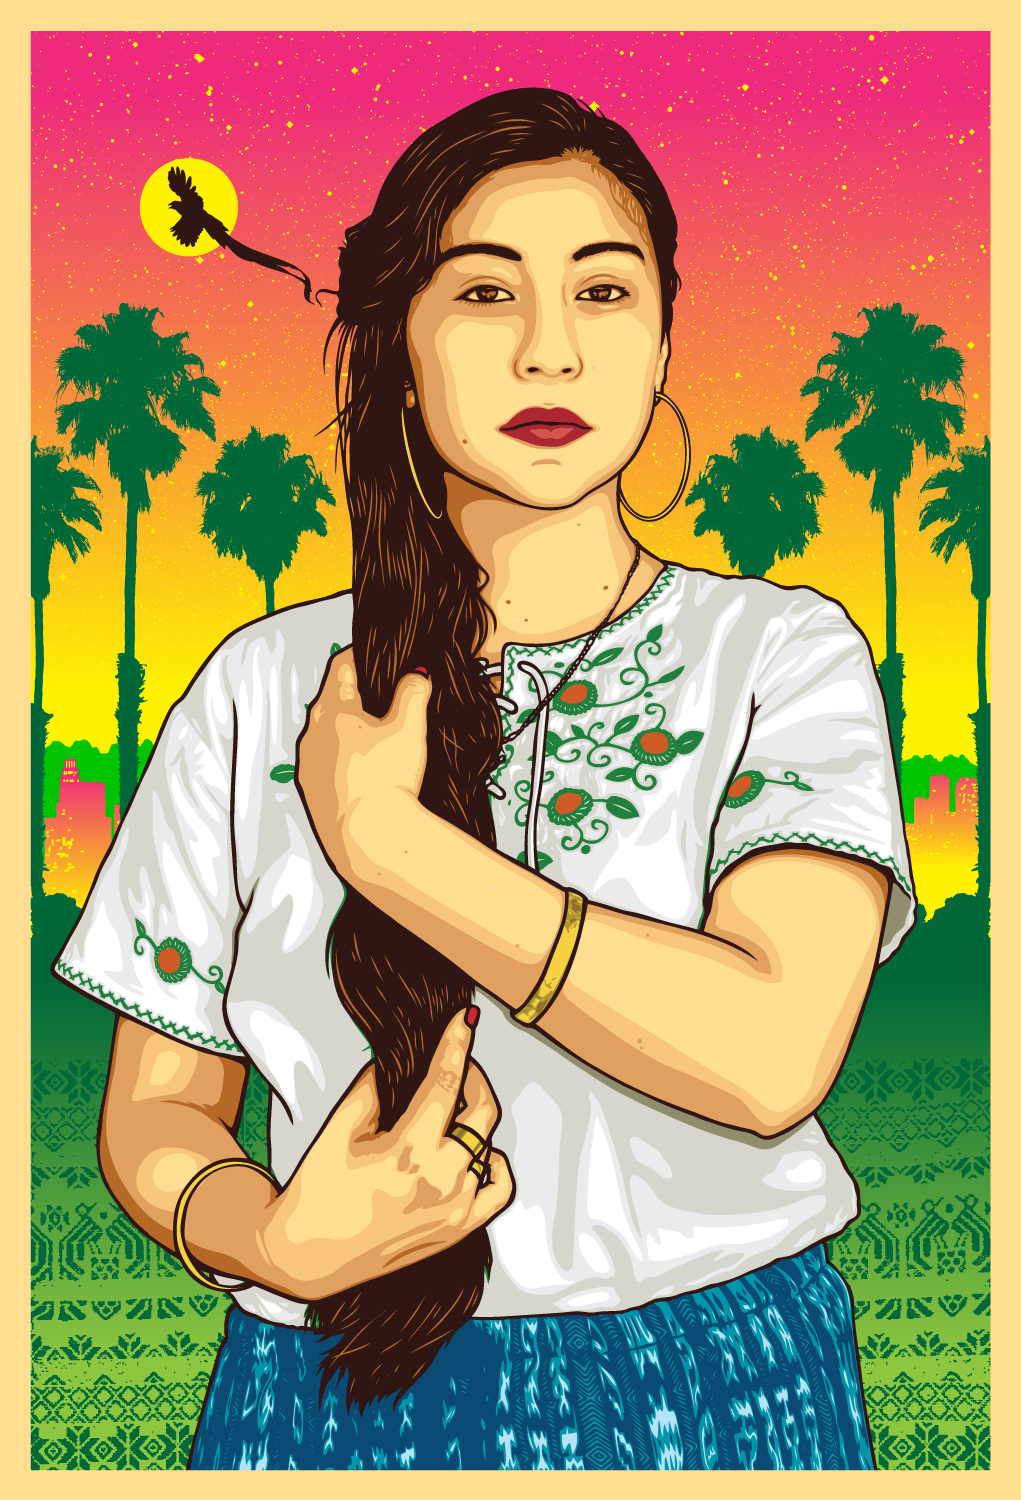 Soy Indigena, Not Hispanic, Not Latinx - 'Soy Indigena, Not Hispanic, Not Latinx' is an art piece by Ernesto Yerena in collaboration with activist Edna Chavez and photographer Arlene Mejorado inspired by Edna's identity as an Indigenous Guatamalan womxn and her rejection of labels placed upon her like